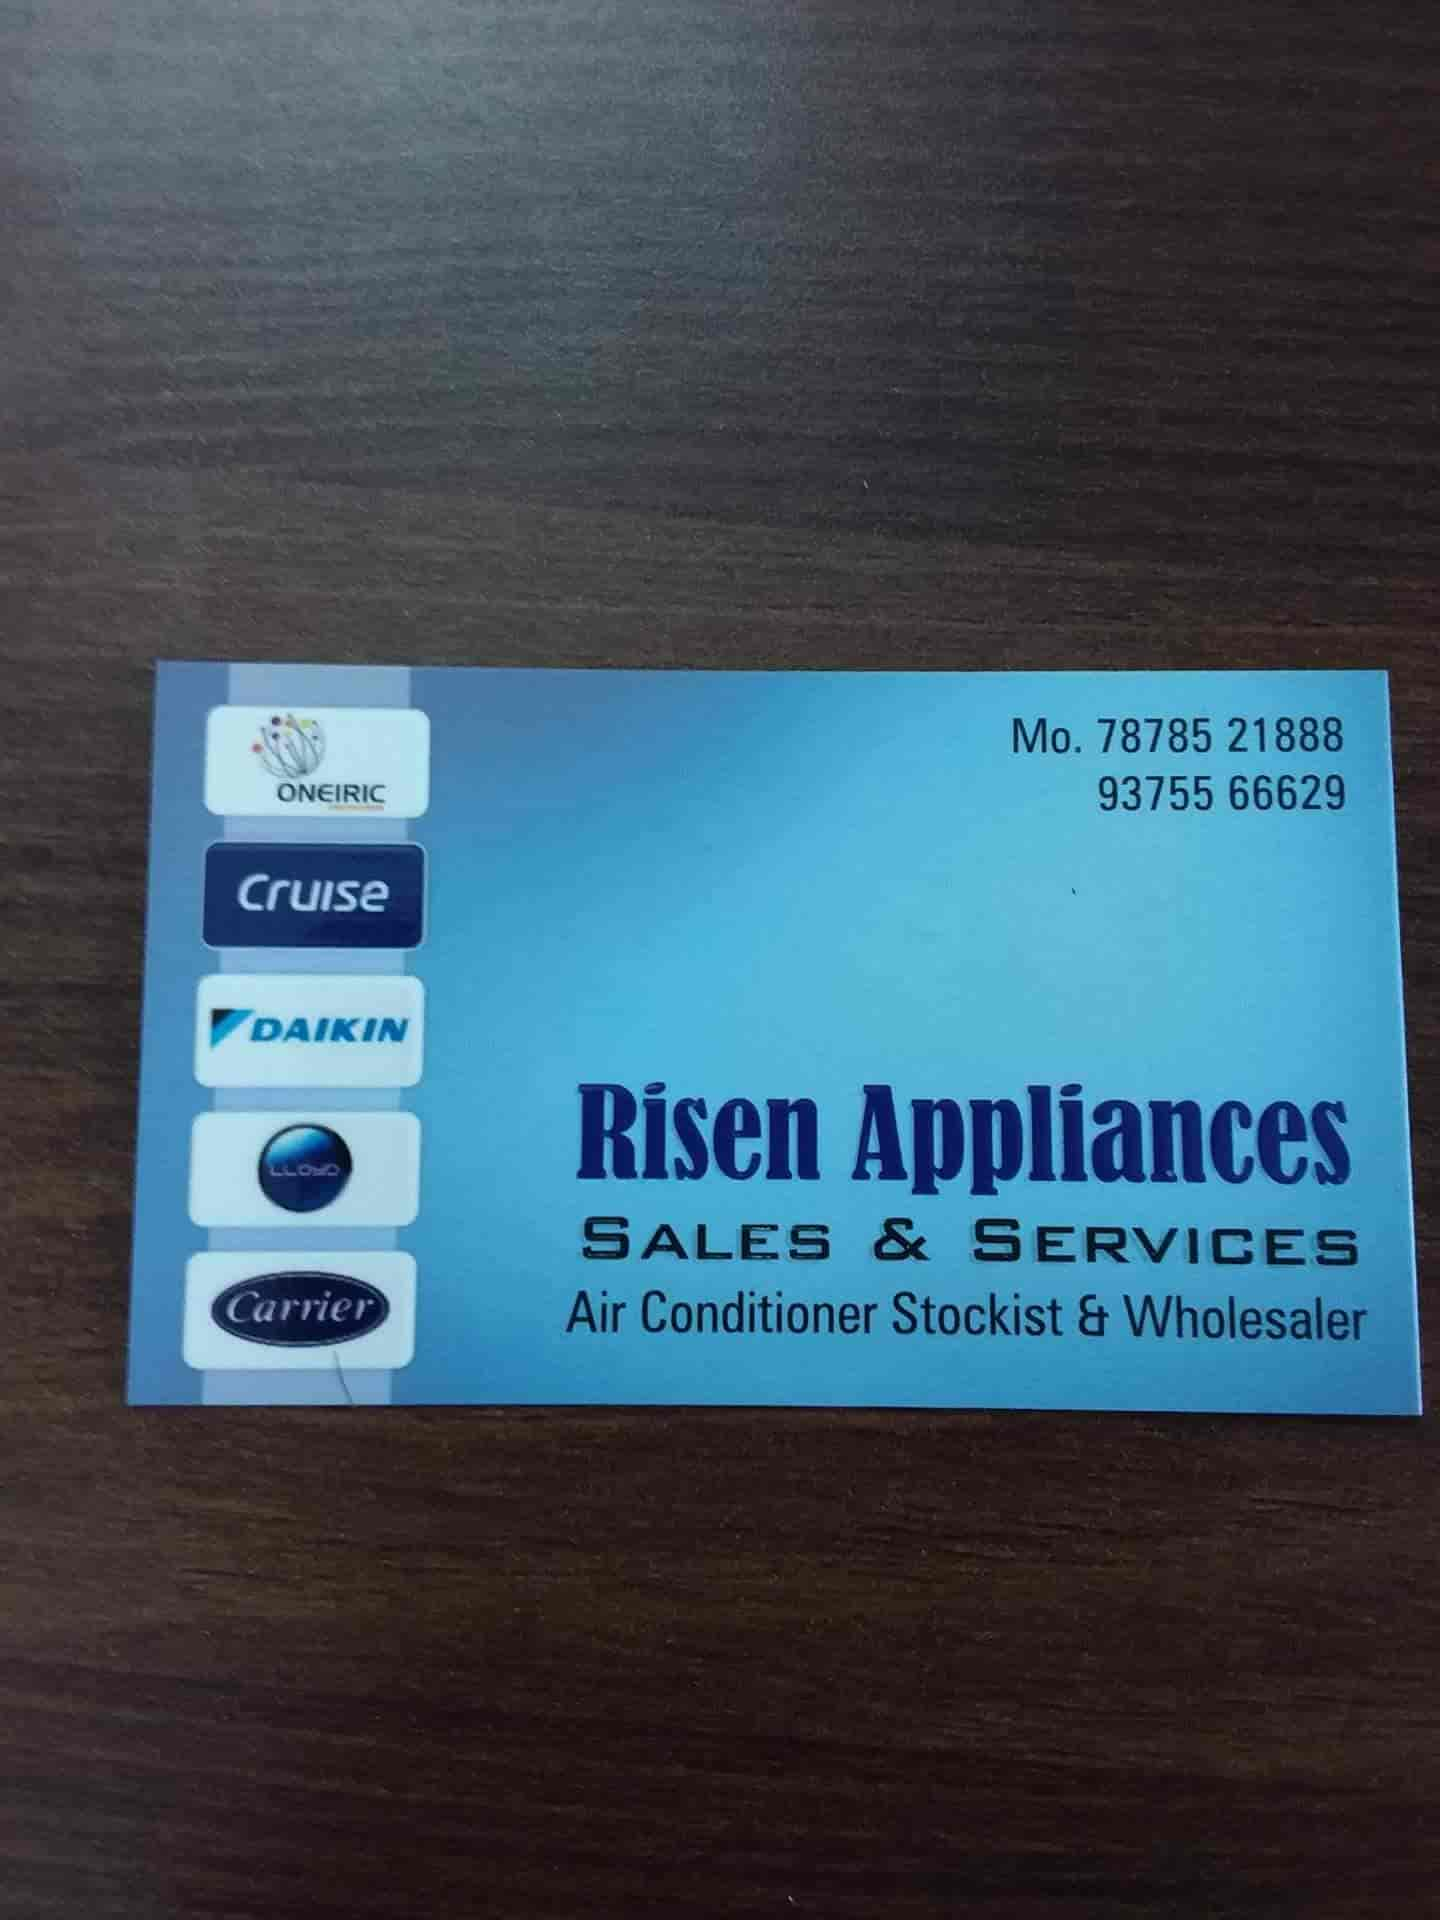 Risen Appliances Photos Parvat Patia Surat Pictures Images